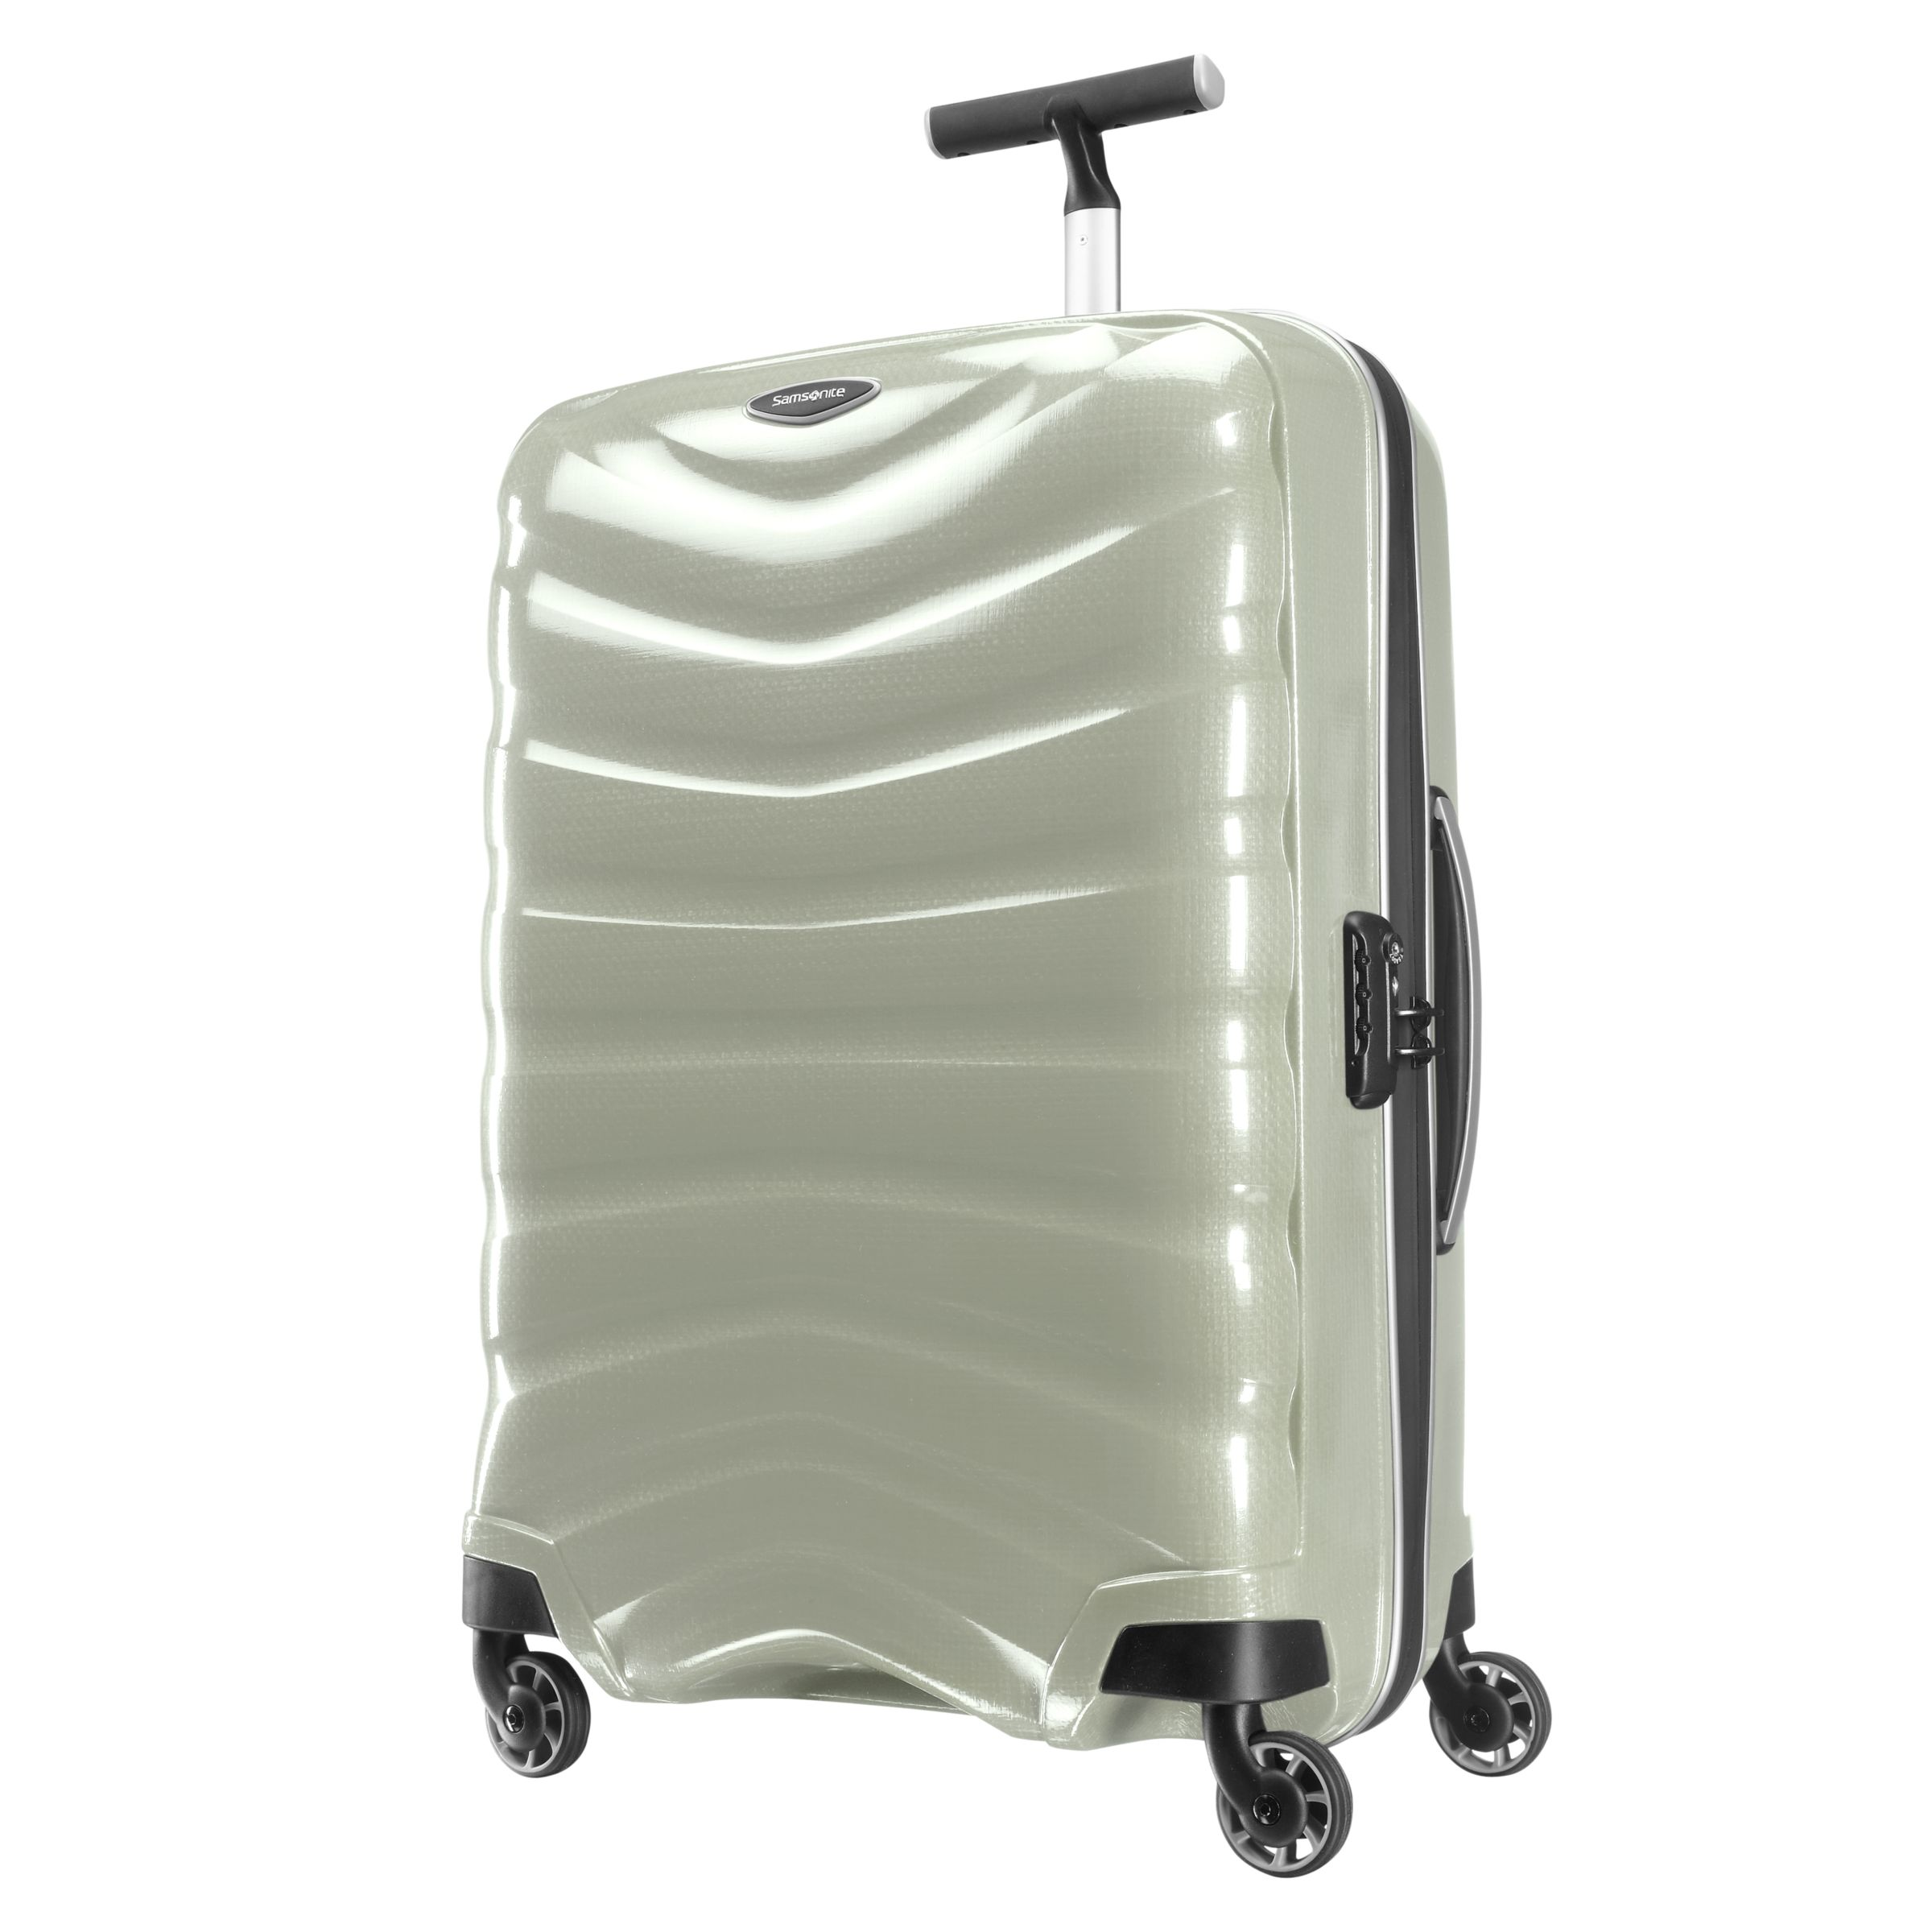 Samsonite Firelite 4-Wheel Spinner Suitcase, White